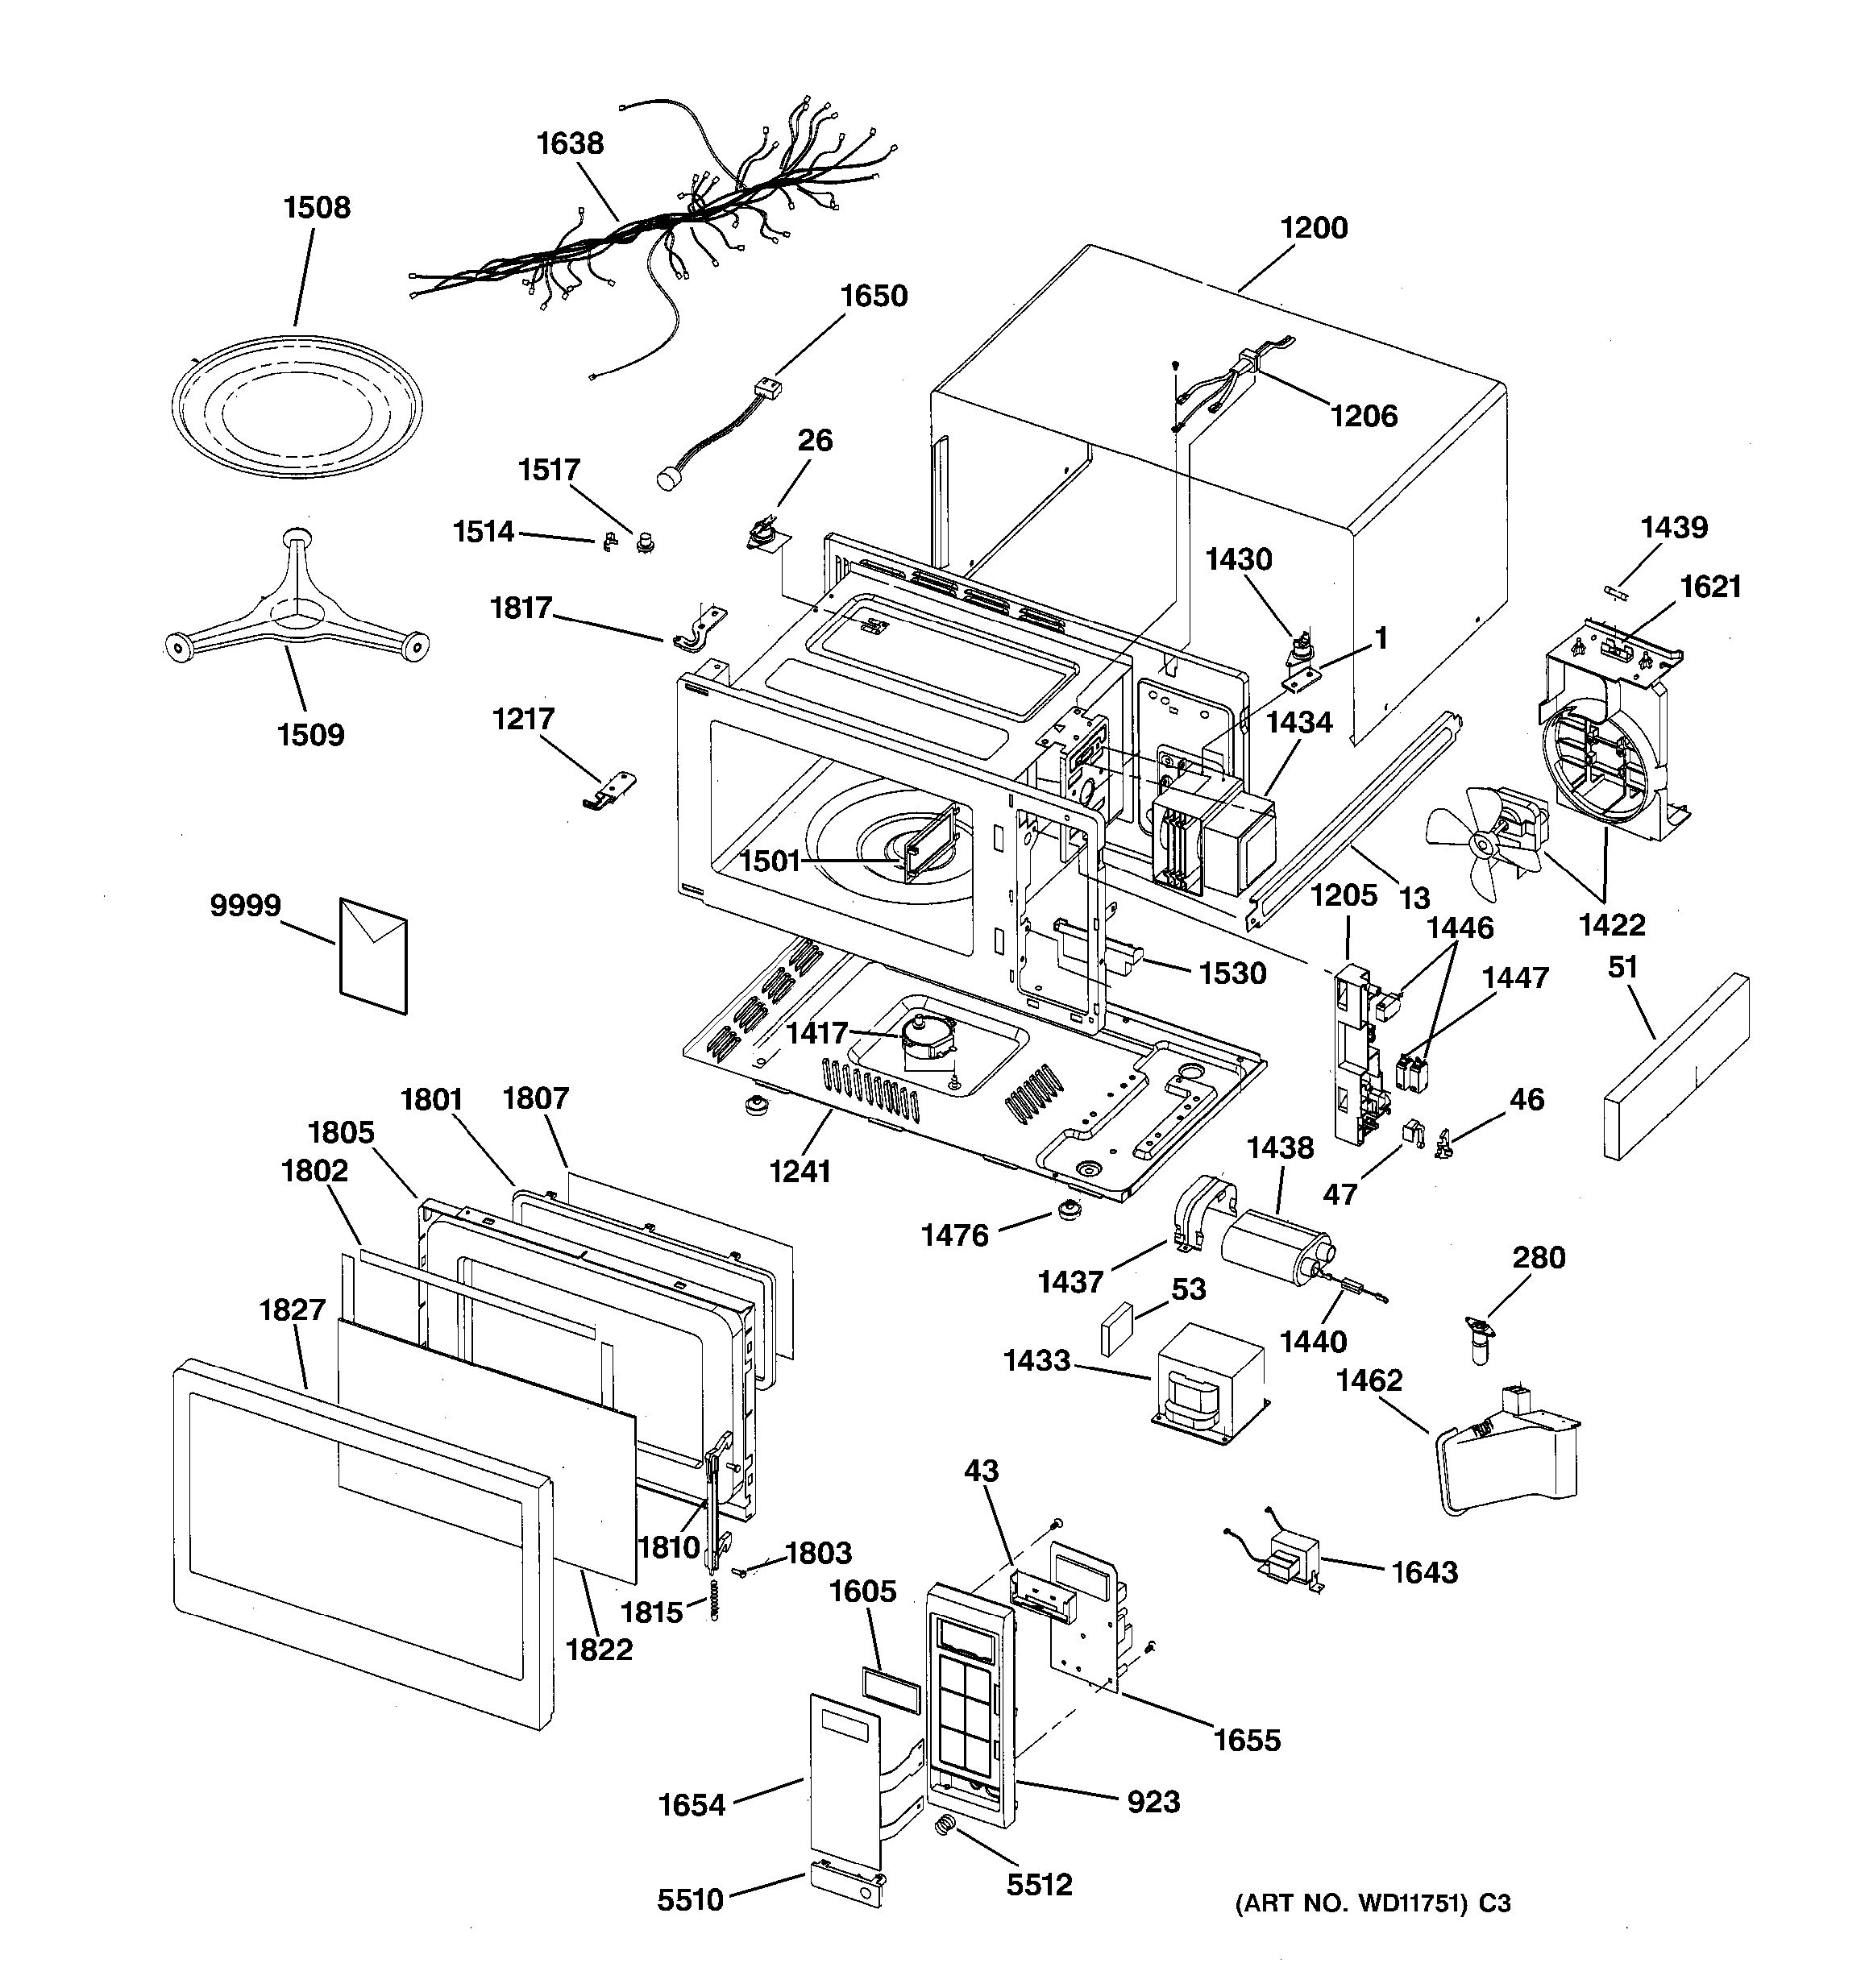 Assembly View For Microwave Parts